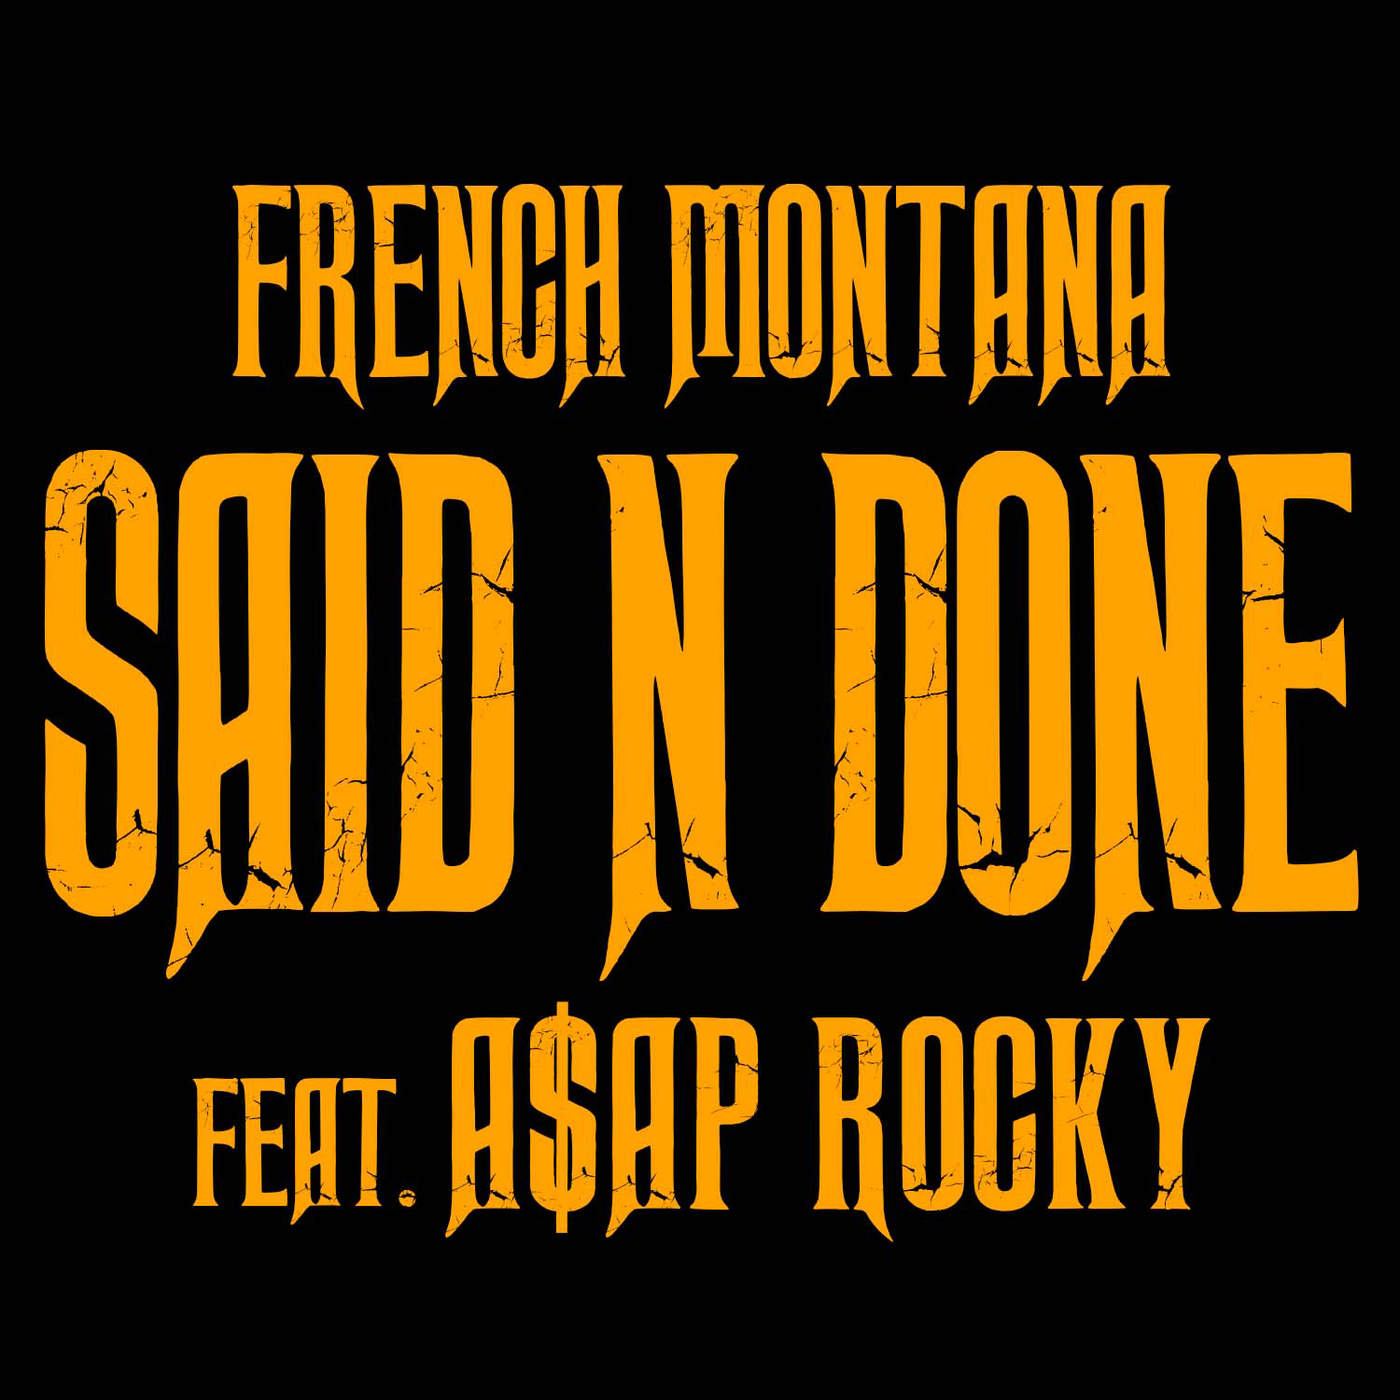 french montana said n done feat aap rocky single